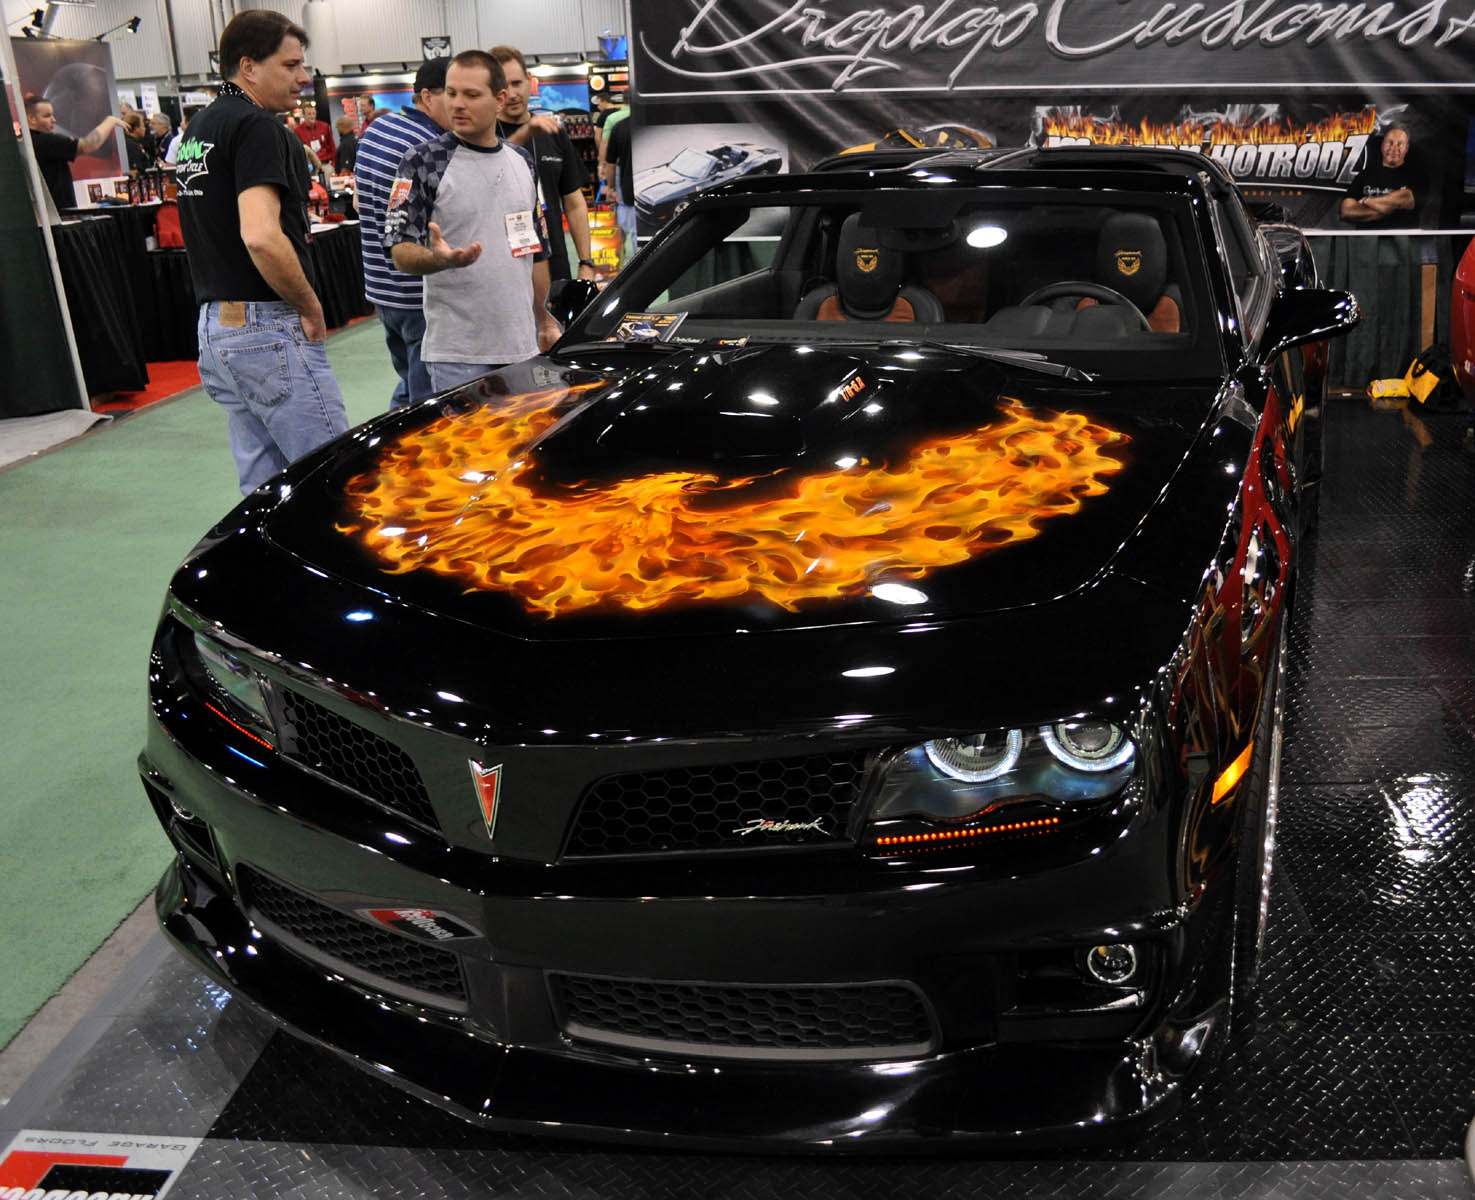 car reviews 2010 firehawk trans am tribute from the trans am depot paint by mike lavallee. Black Bedroom Furniture Sets. Home Design Ideas